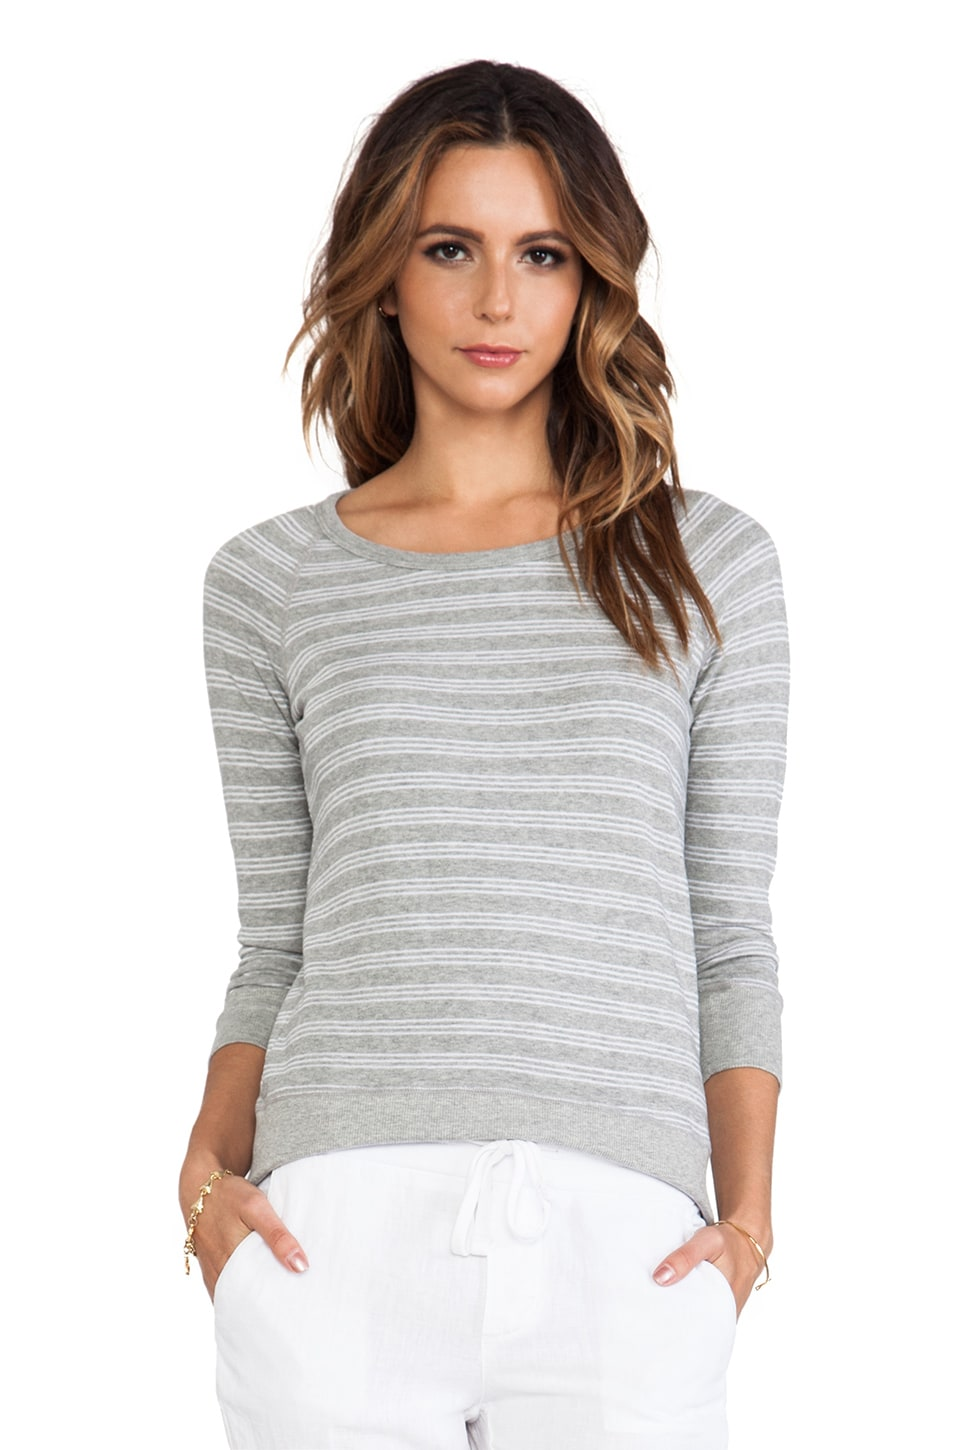 James Perse Stripe Vintage Raglan in Heather Grey